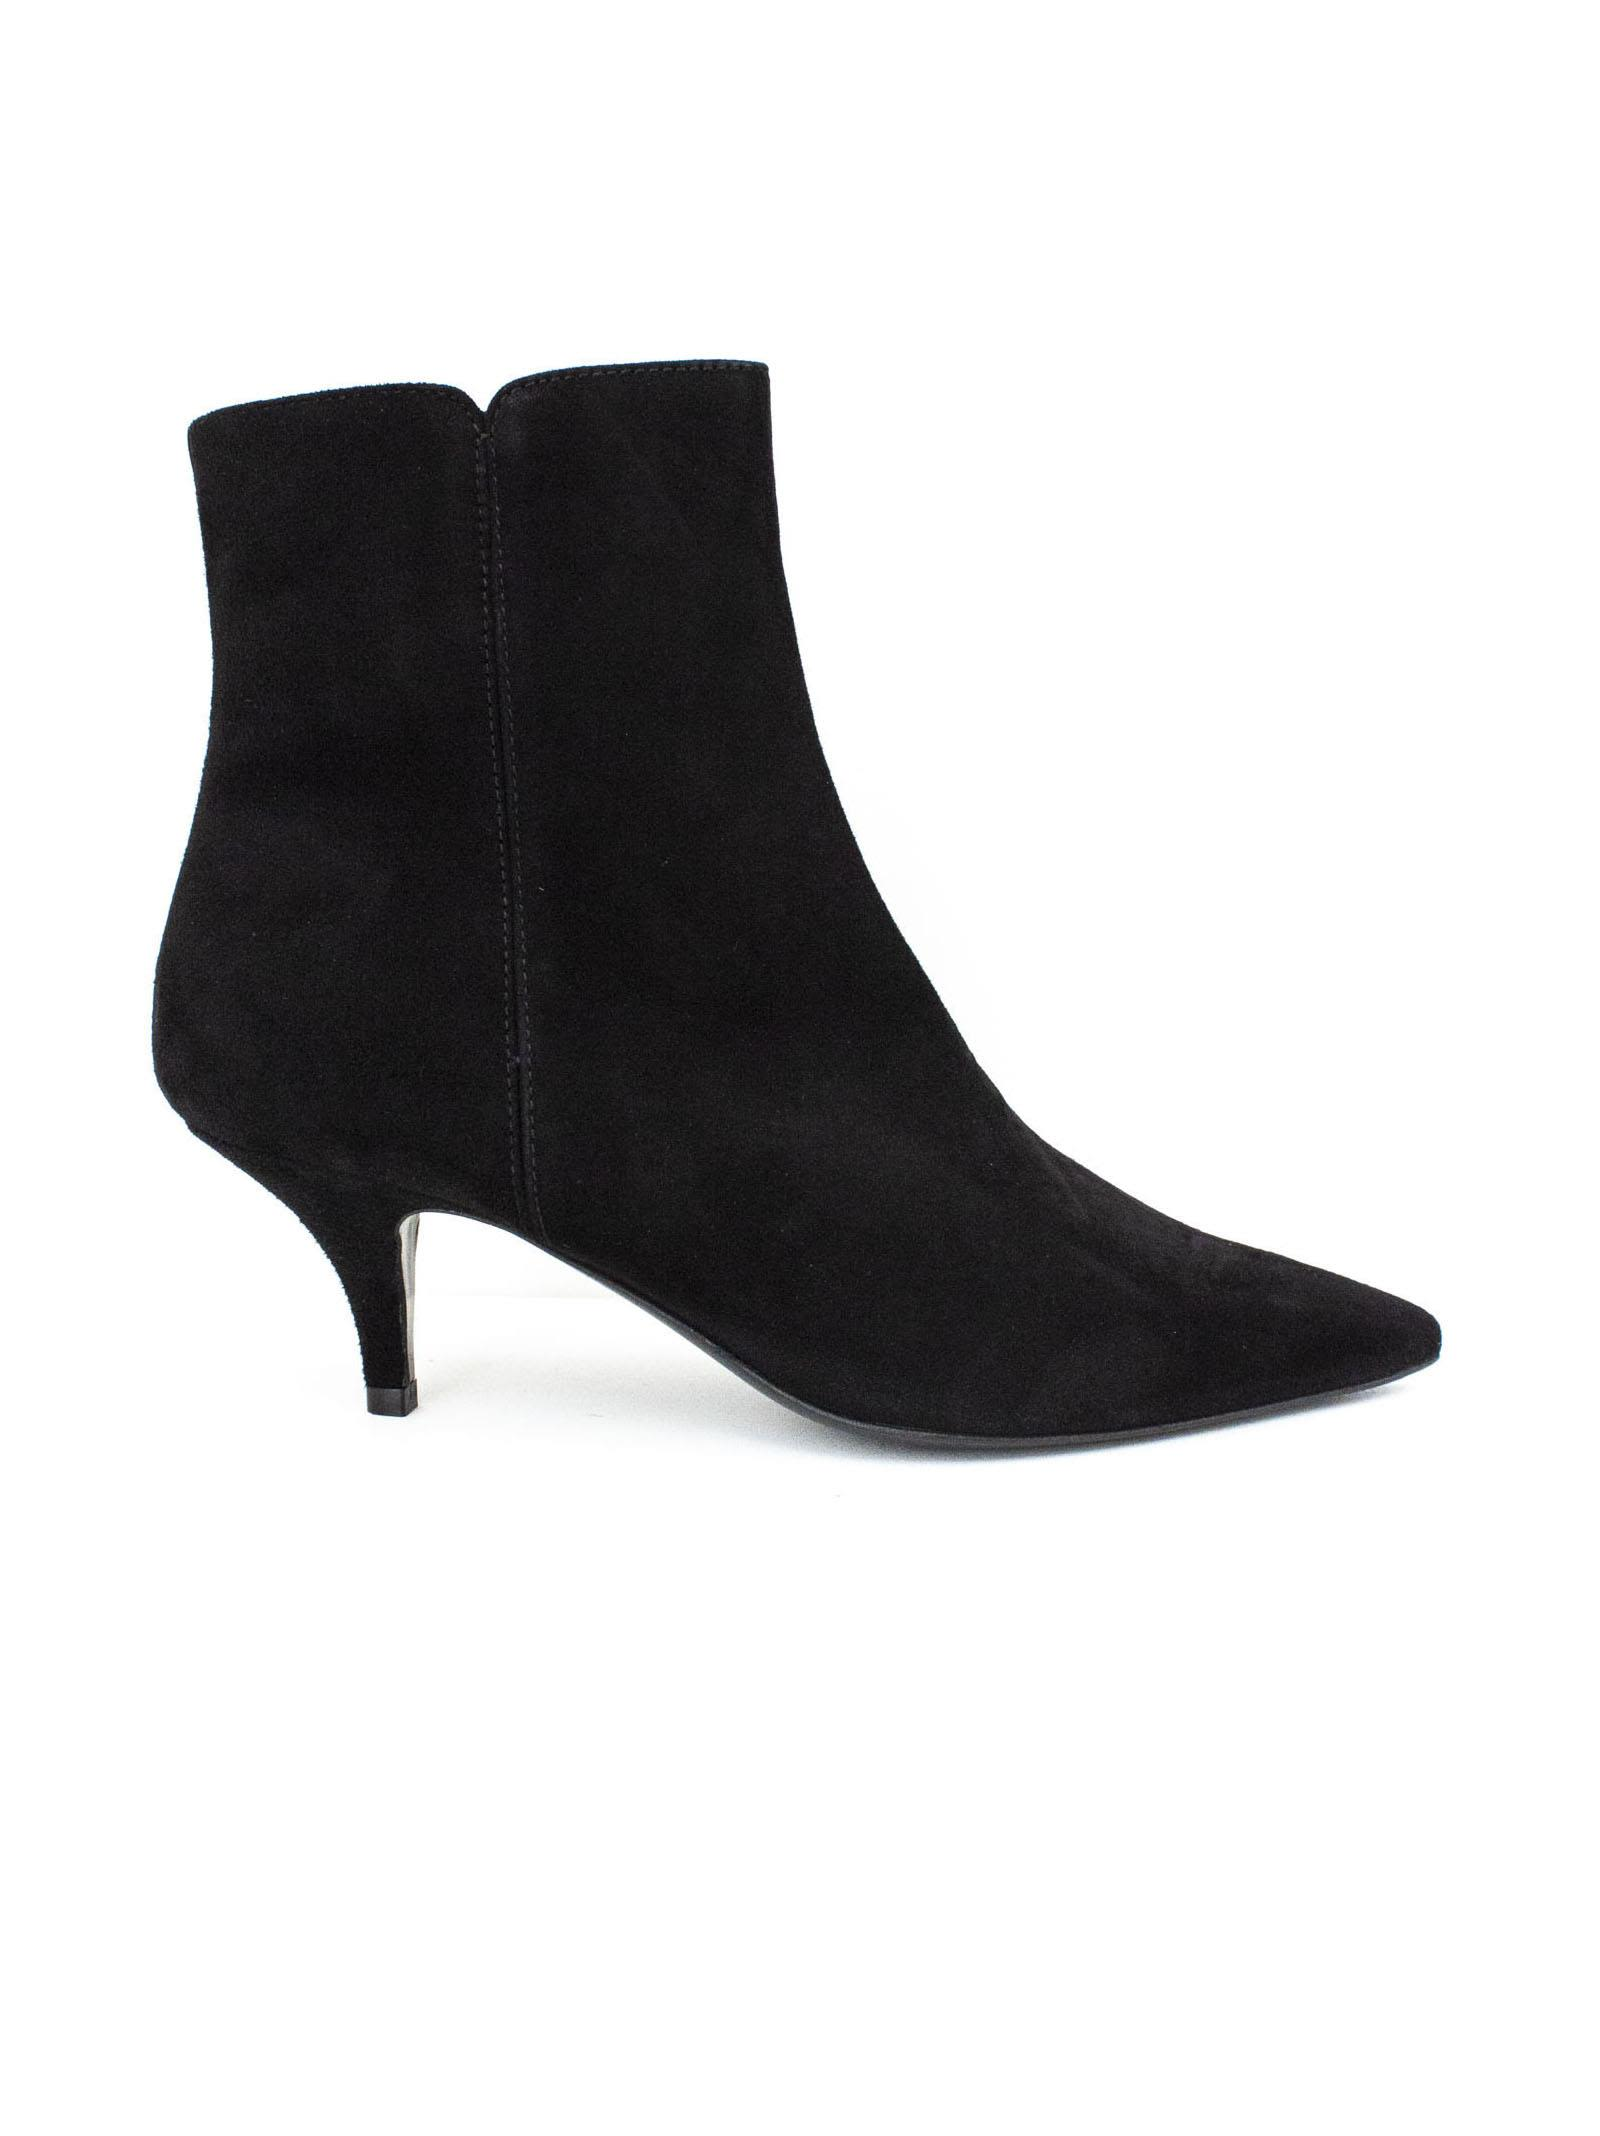 ROBERTO FESTA Black Suede Leather Oxford Ankle Boots. in Nero